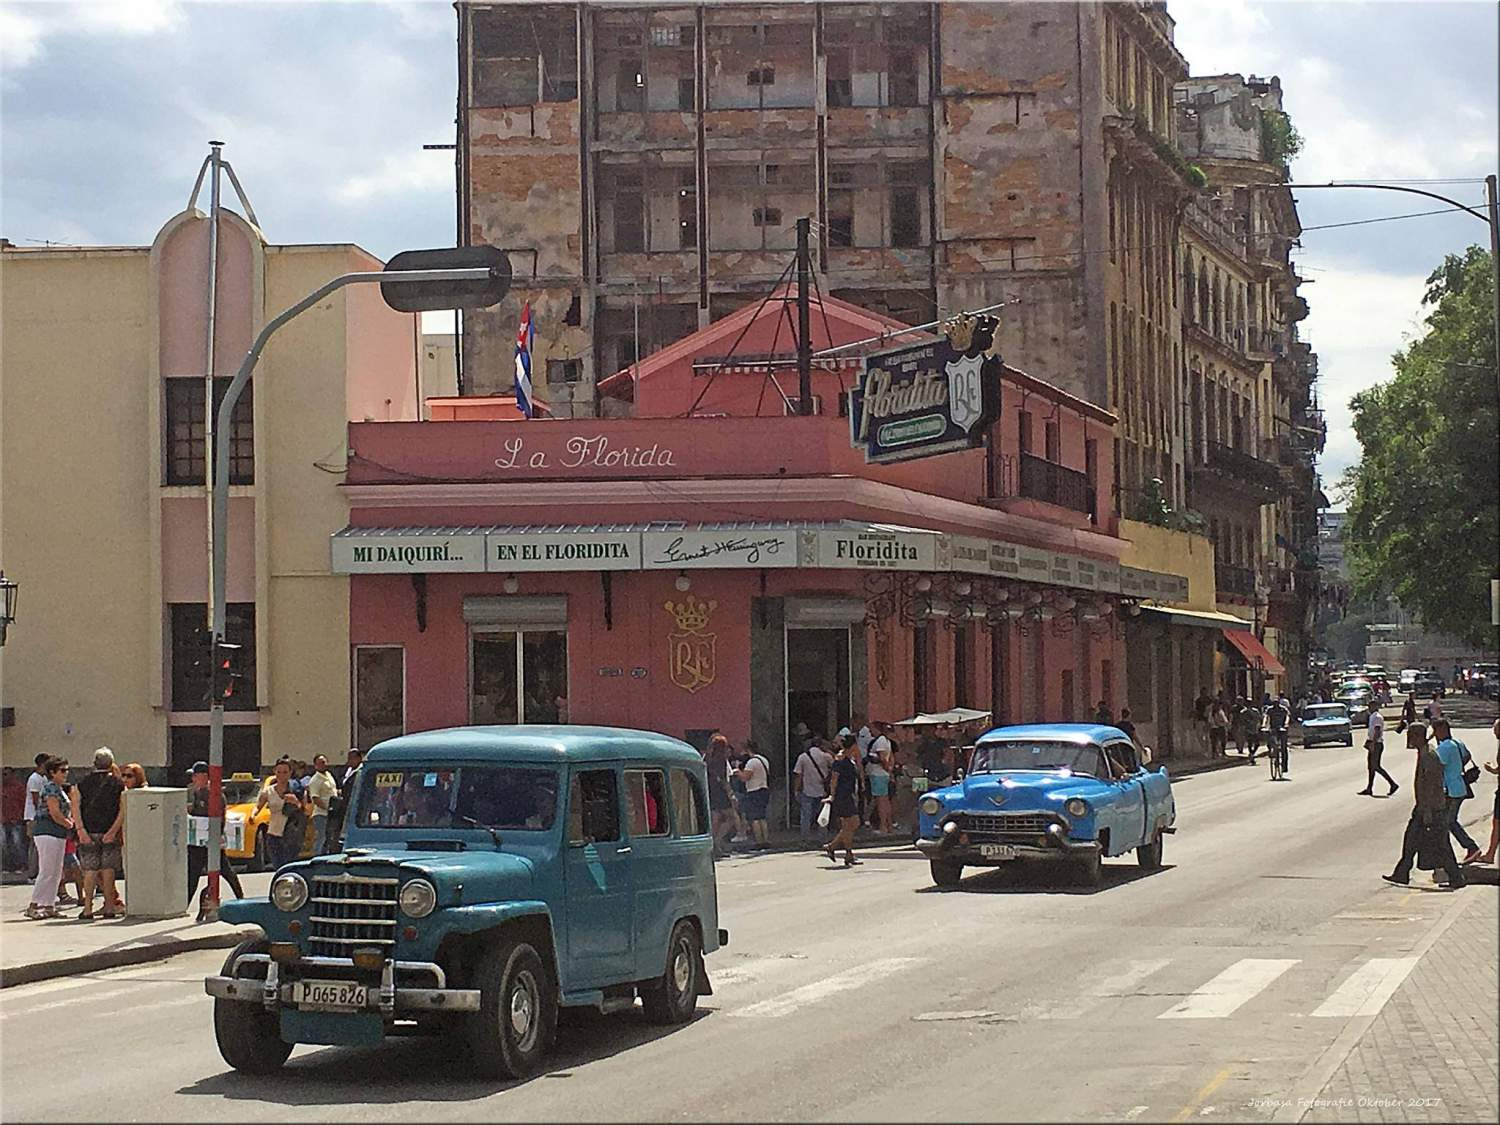 Famous bar of Havana: El Floridita